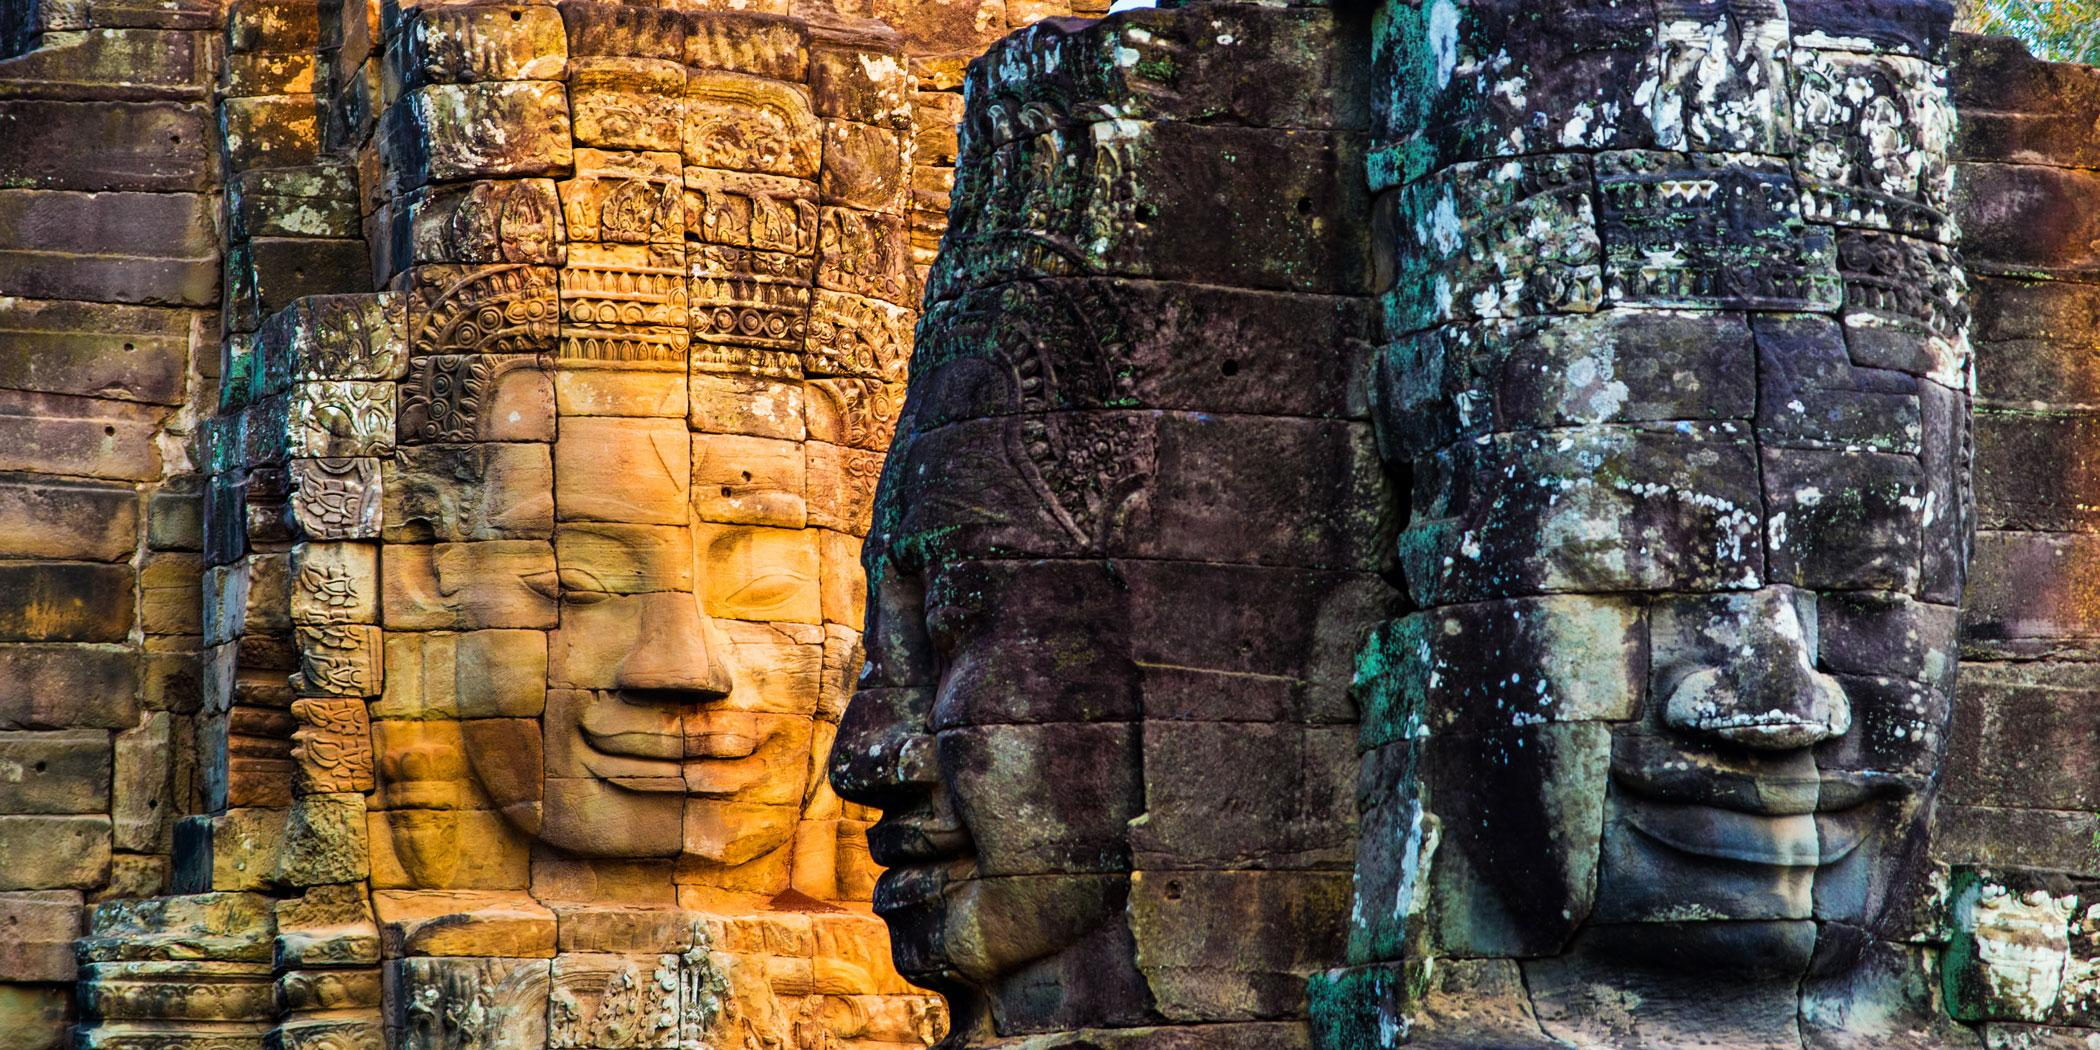 Stone murals and statue at Bayon Temple in Angkor Thom. (Photo: Fotolia)